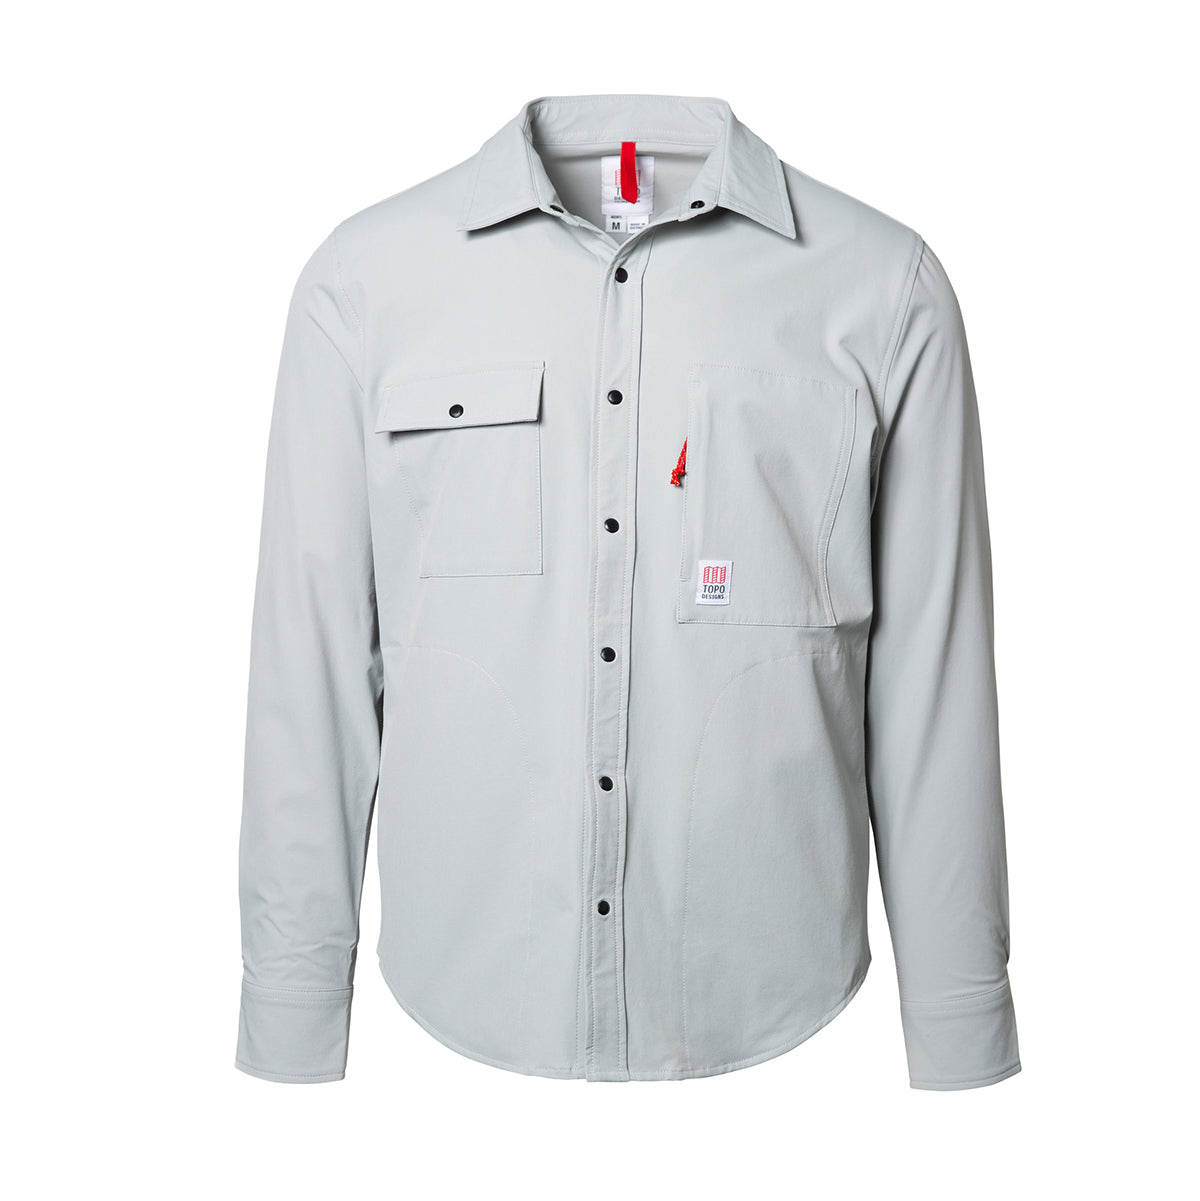 Topo Designs Men's Breaker Shirt Jacket